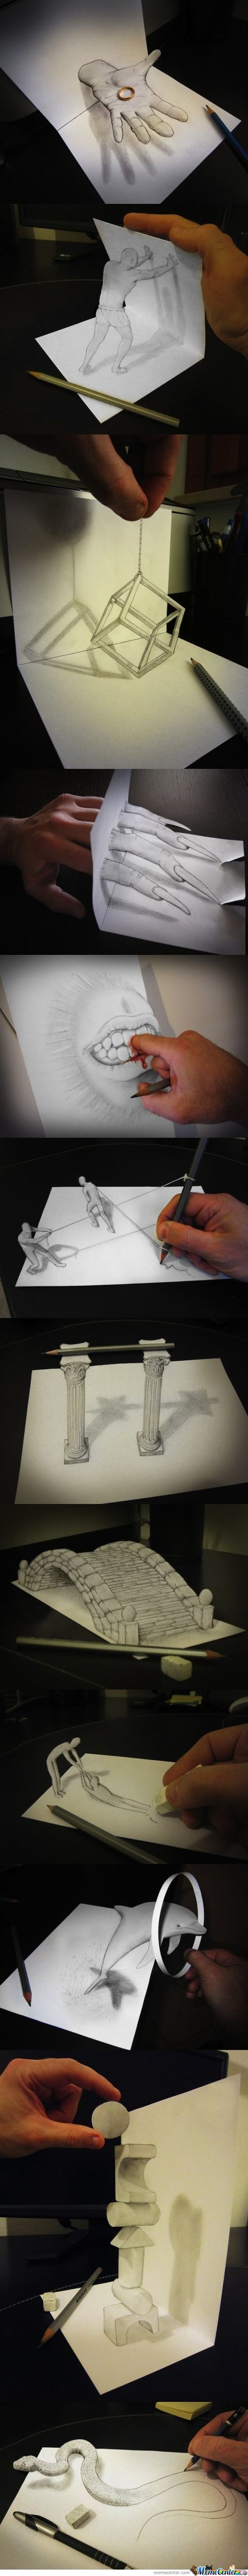 Some Awesome People 4#(3D Drawings)